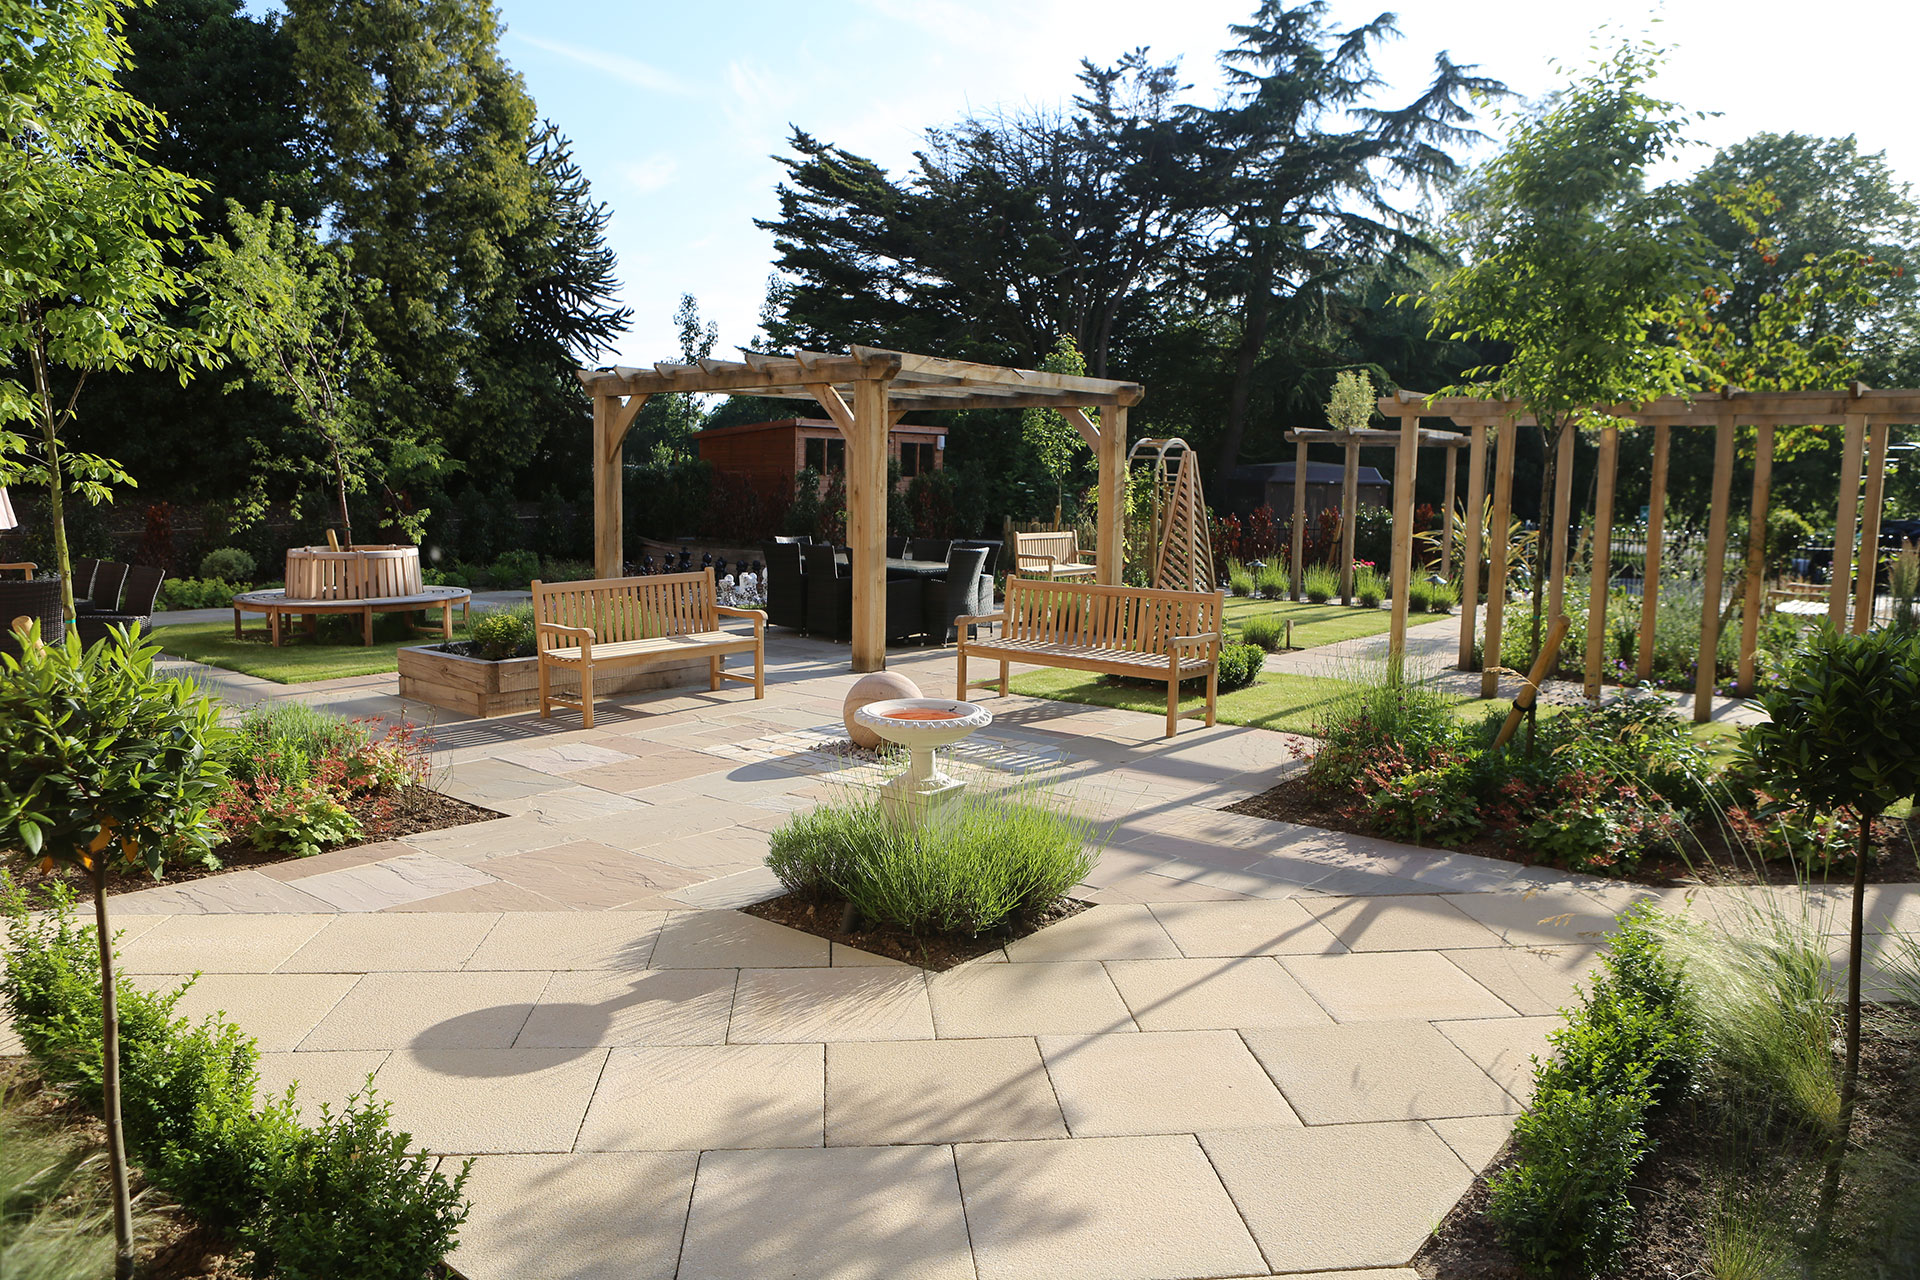 PARK VIEW CARE HOME IPSWICH | Aralia Garden Design ... on Home Backyard Ideas id=71351